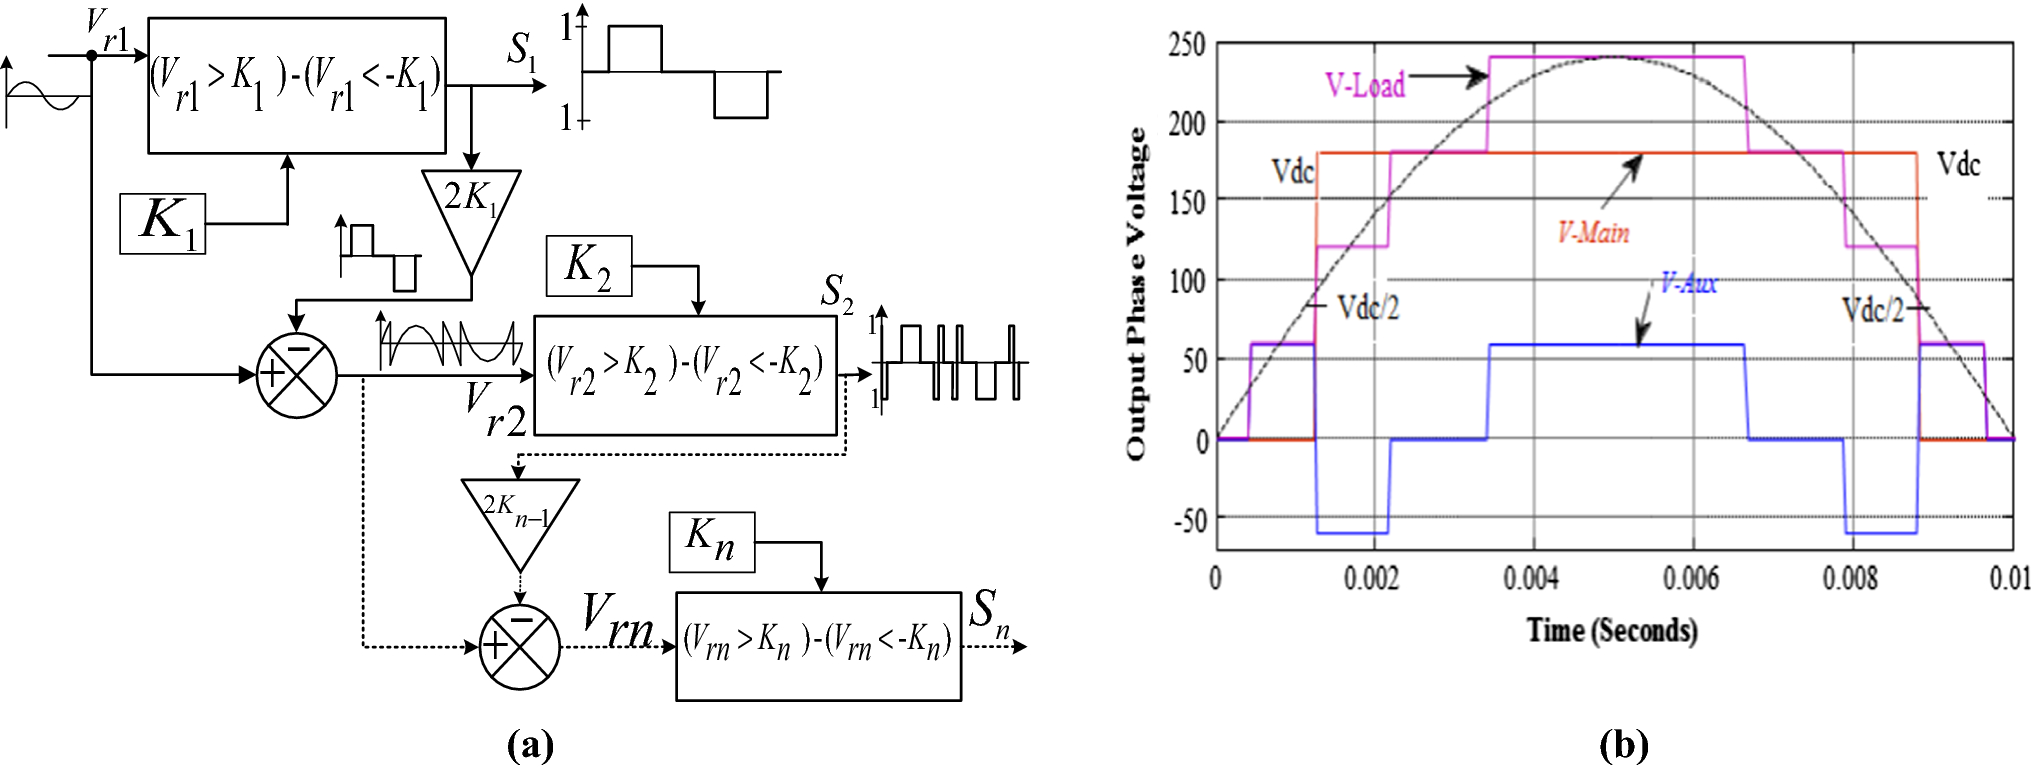 Constant V F Control And Frequency O Isolated Winding Method Block Diagram Open Image In New Window